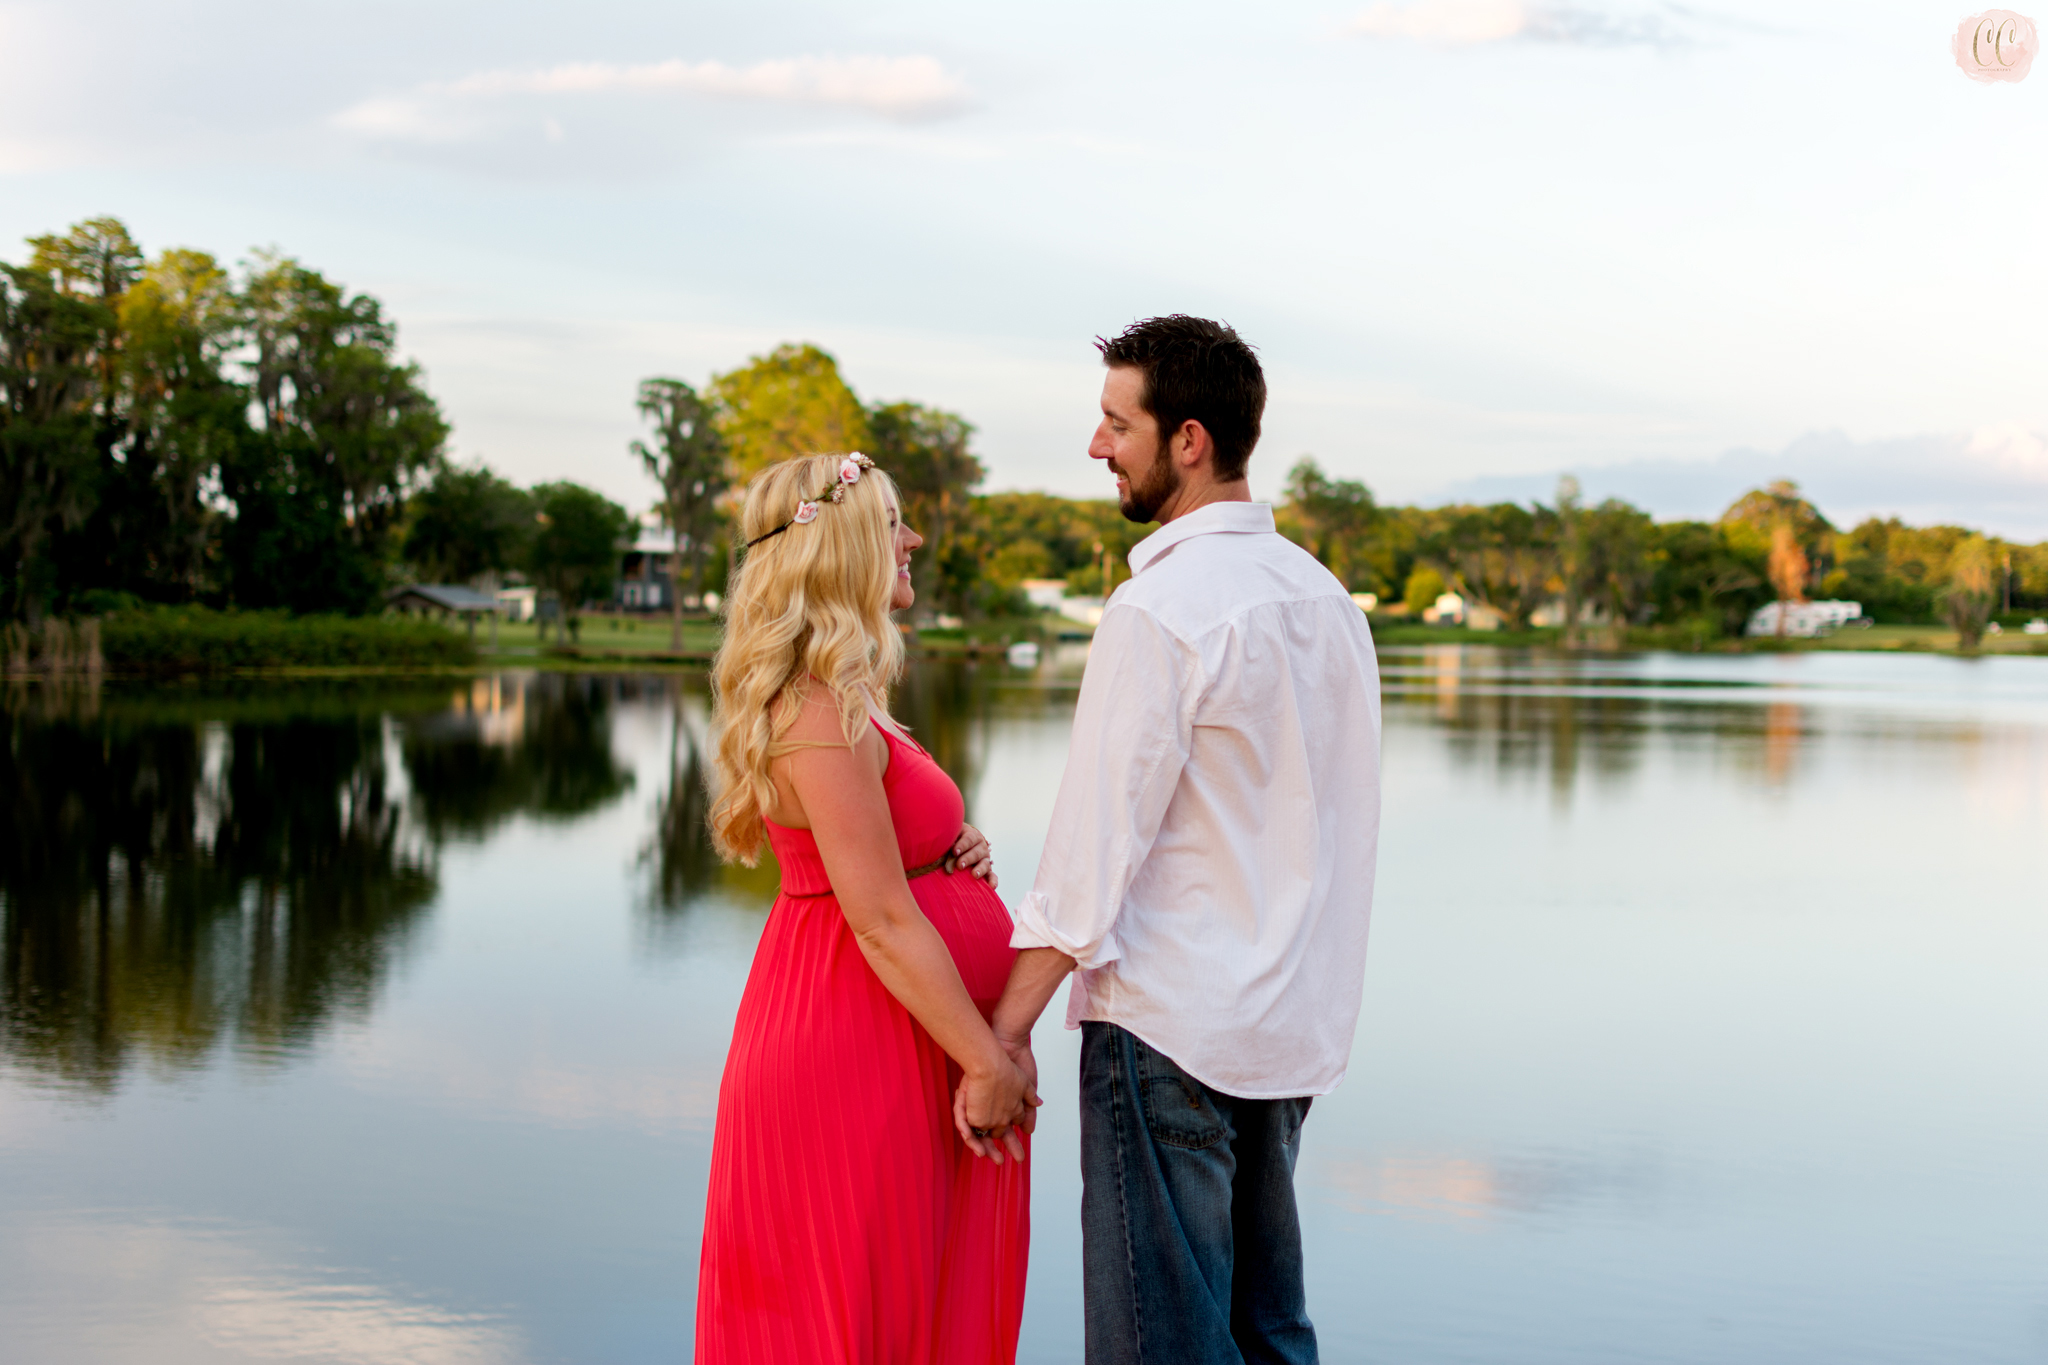 Maternity photos taken at lake in Odessa, Florida by family photographer Carlie Chew Photography